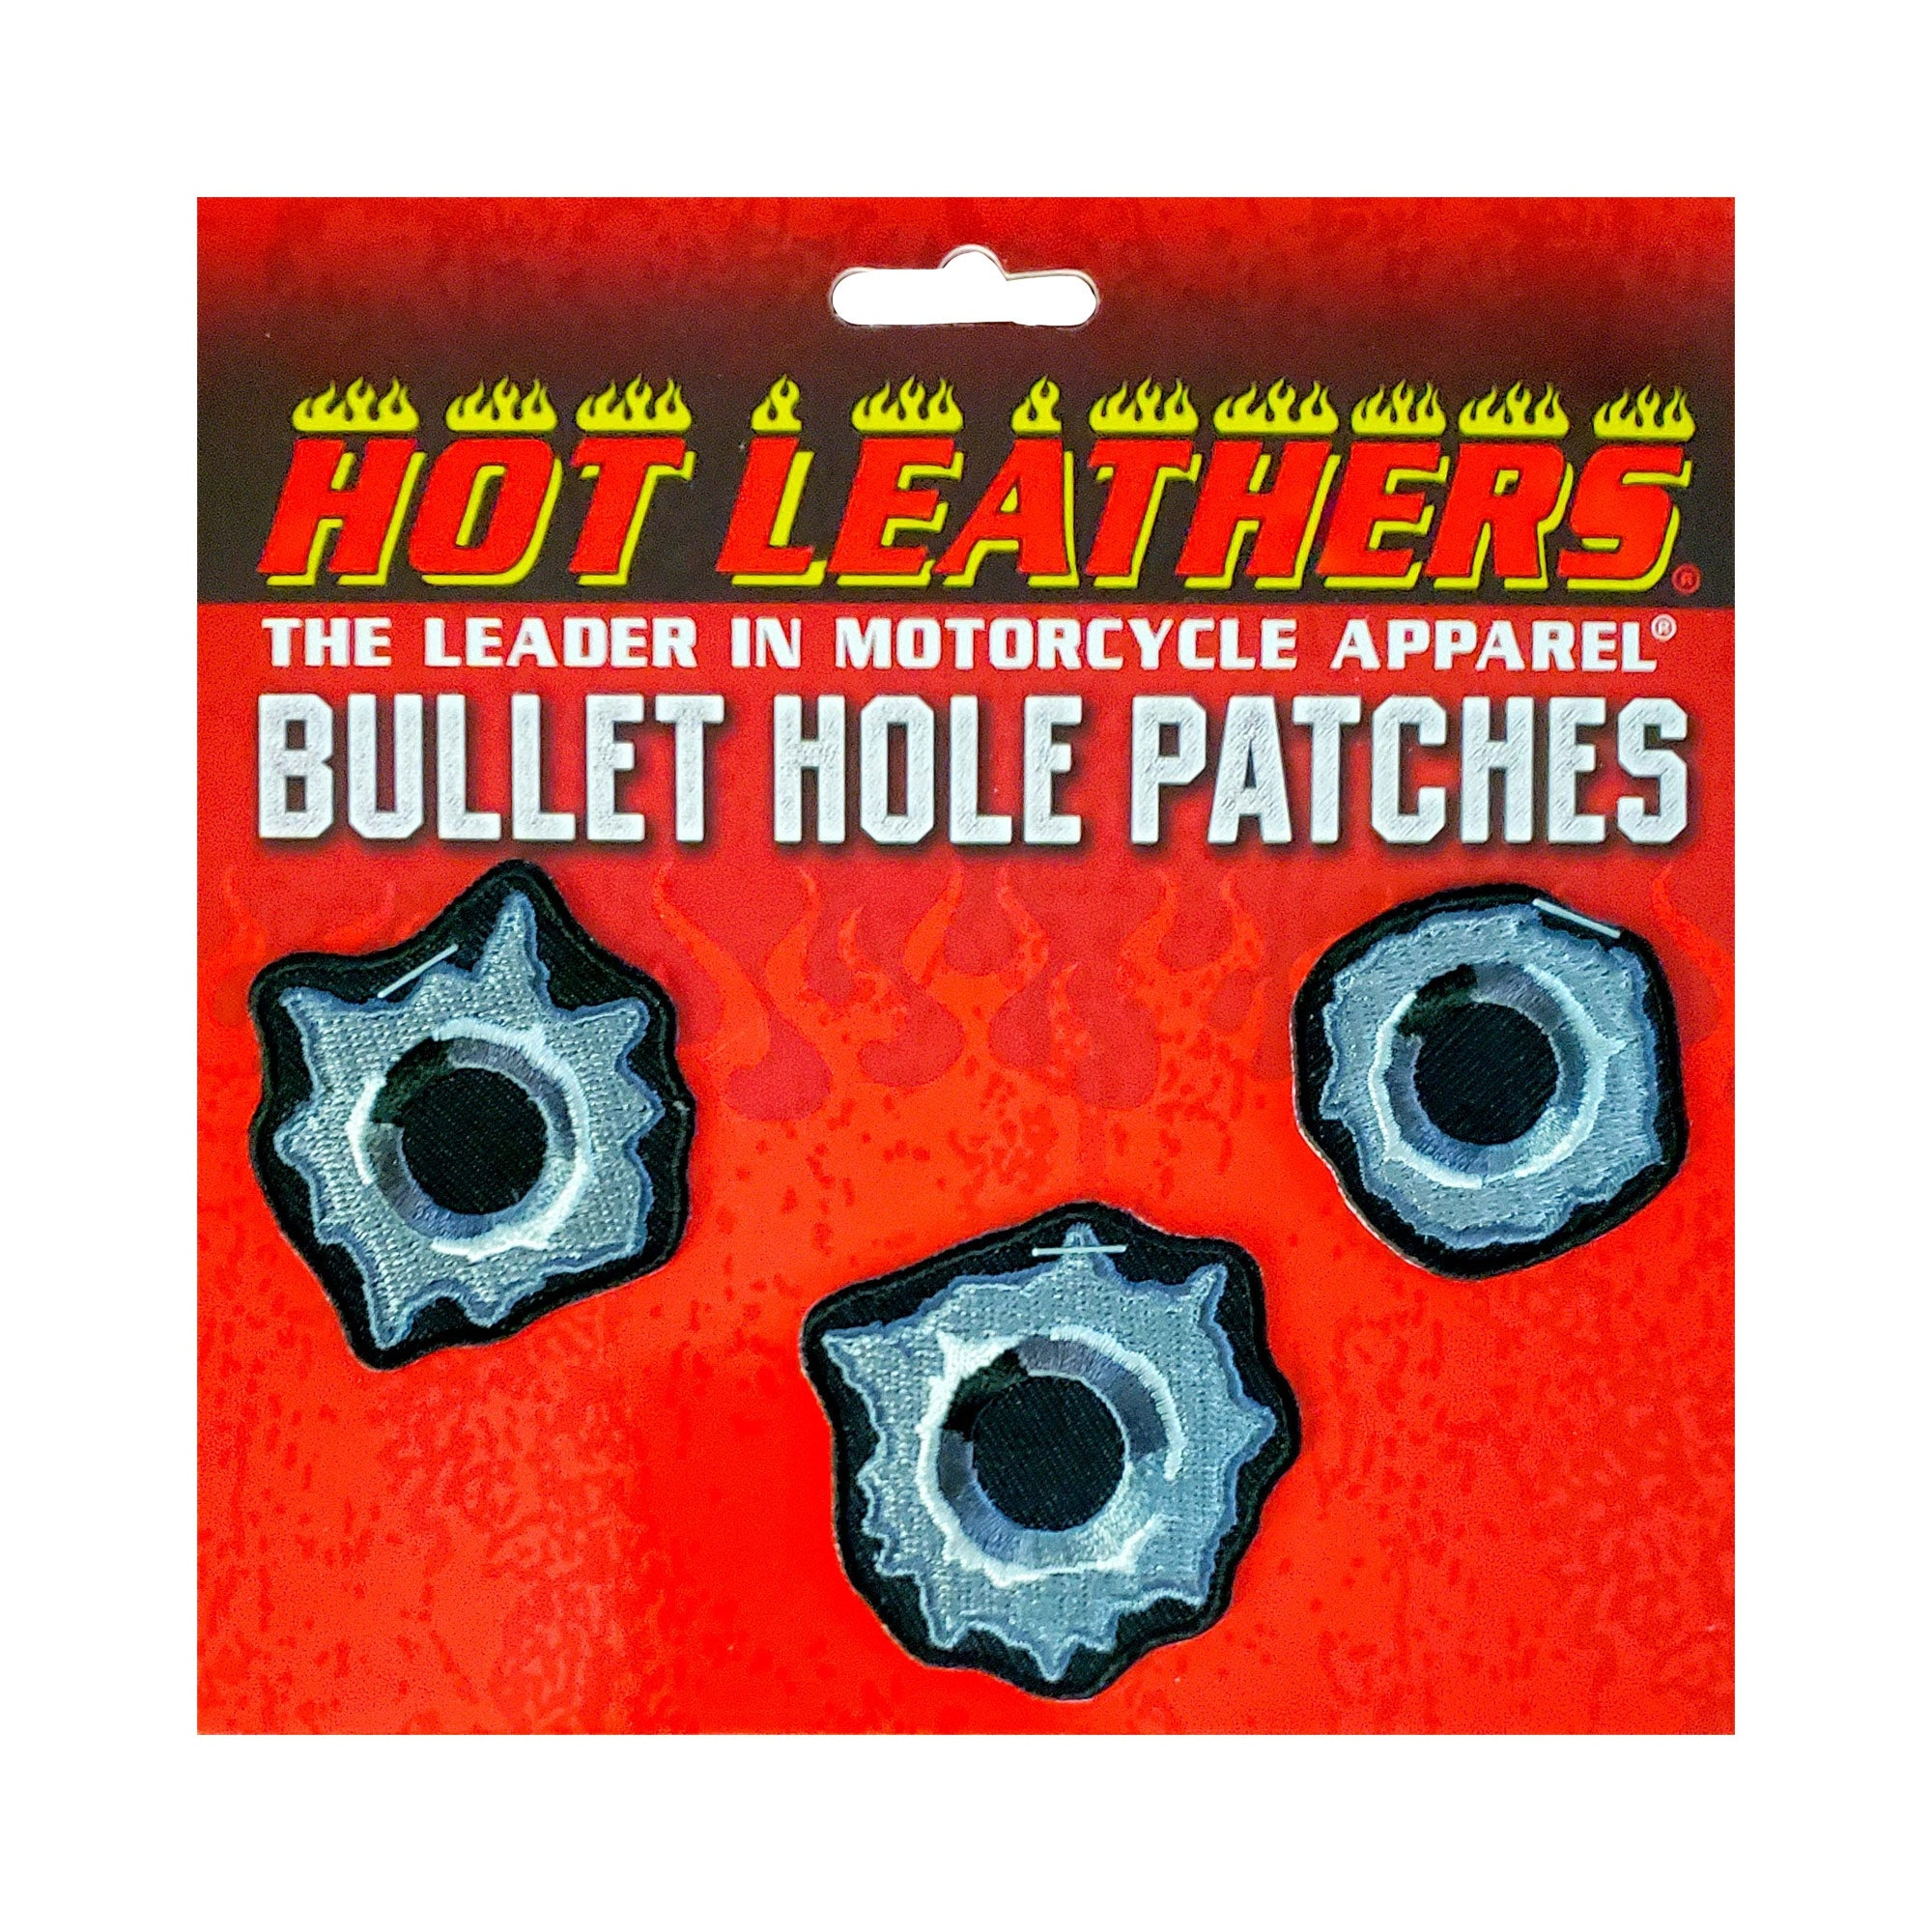 "Hot Leathers 2"" Bullet Hole Patches 3 Piece Set"